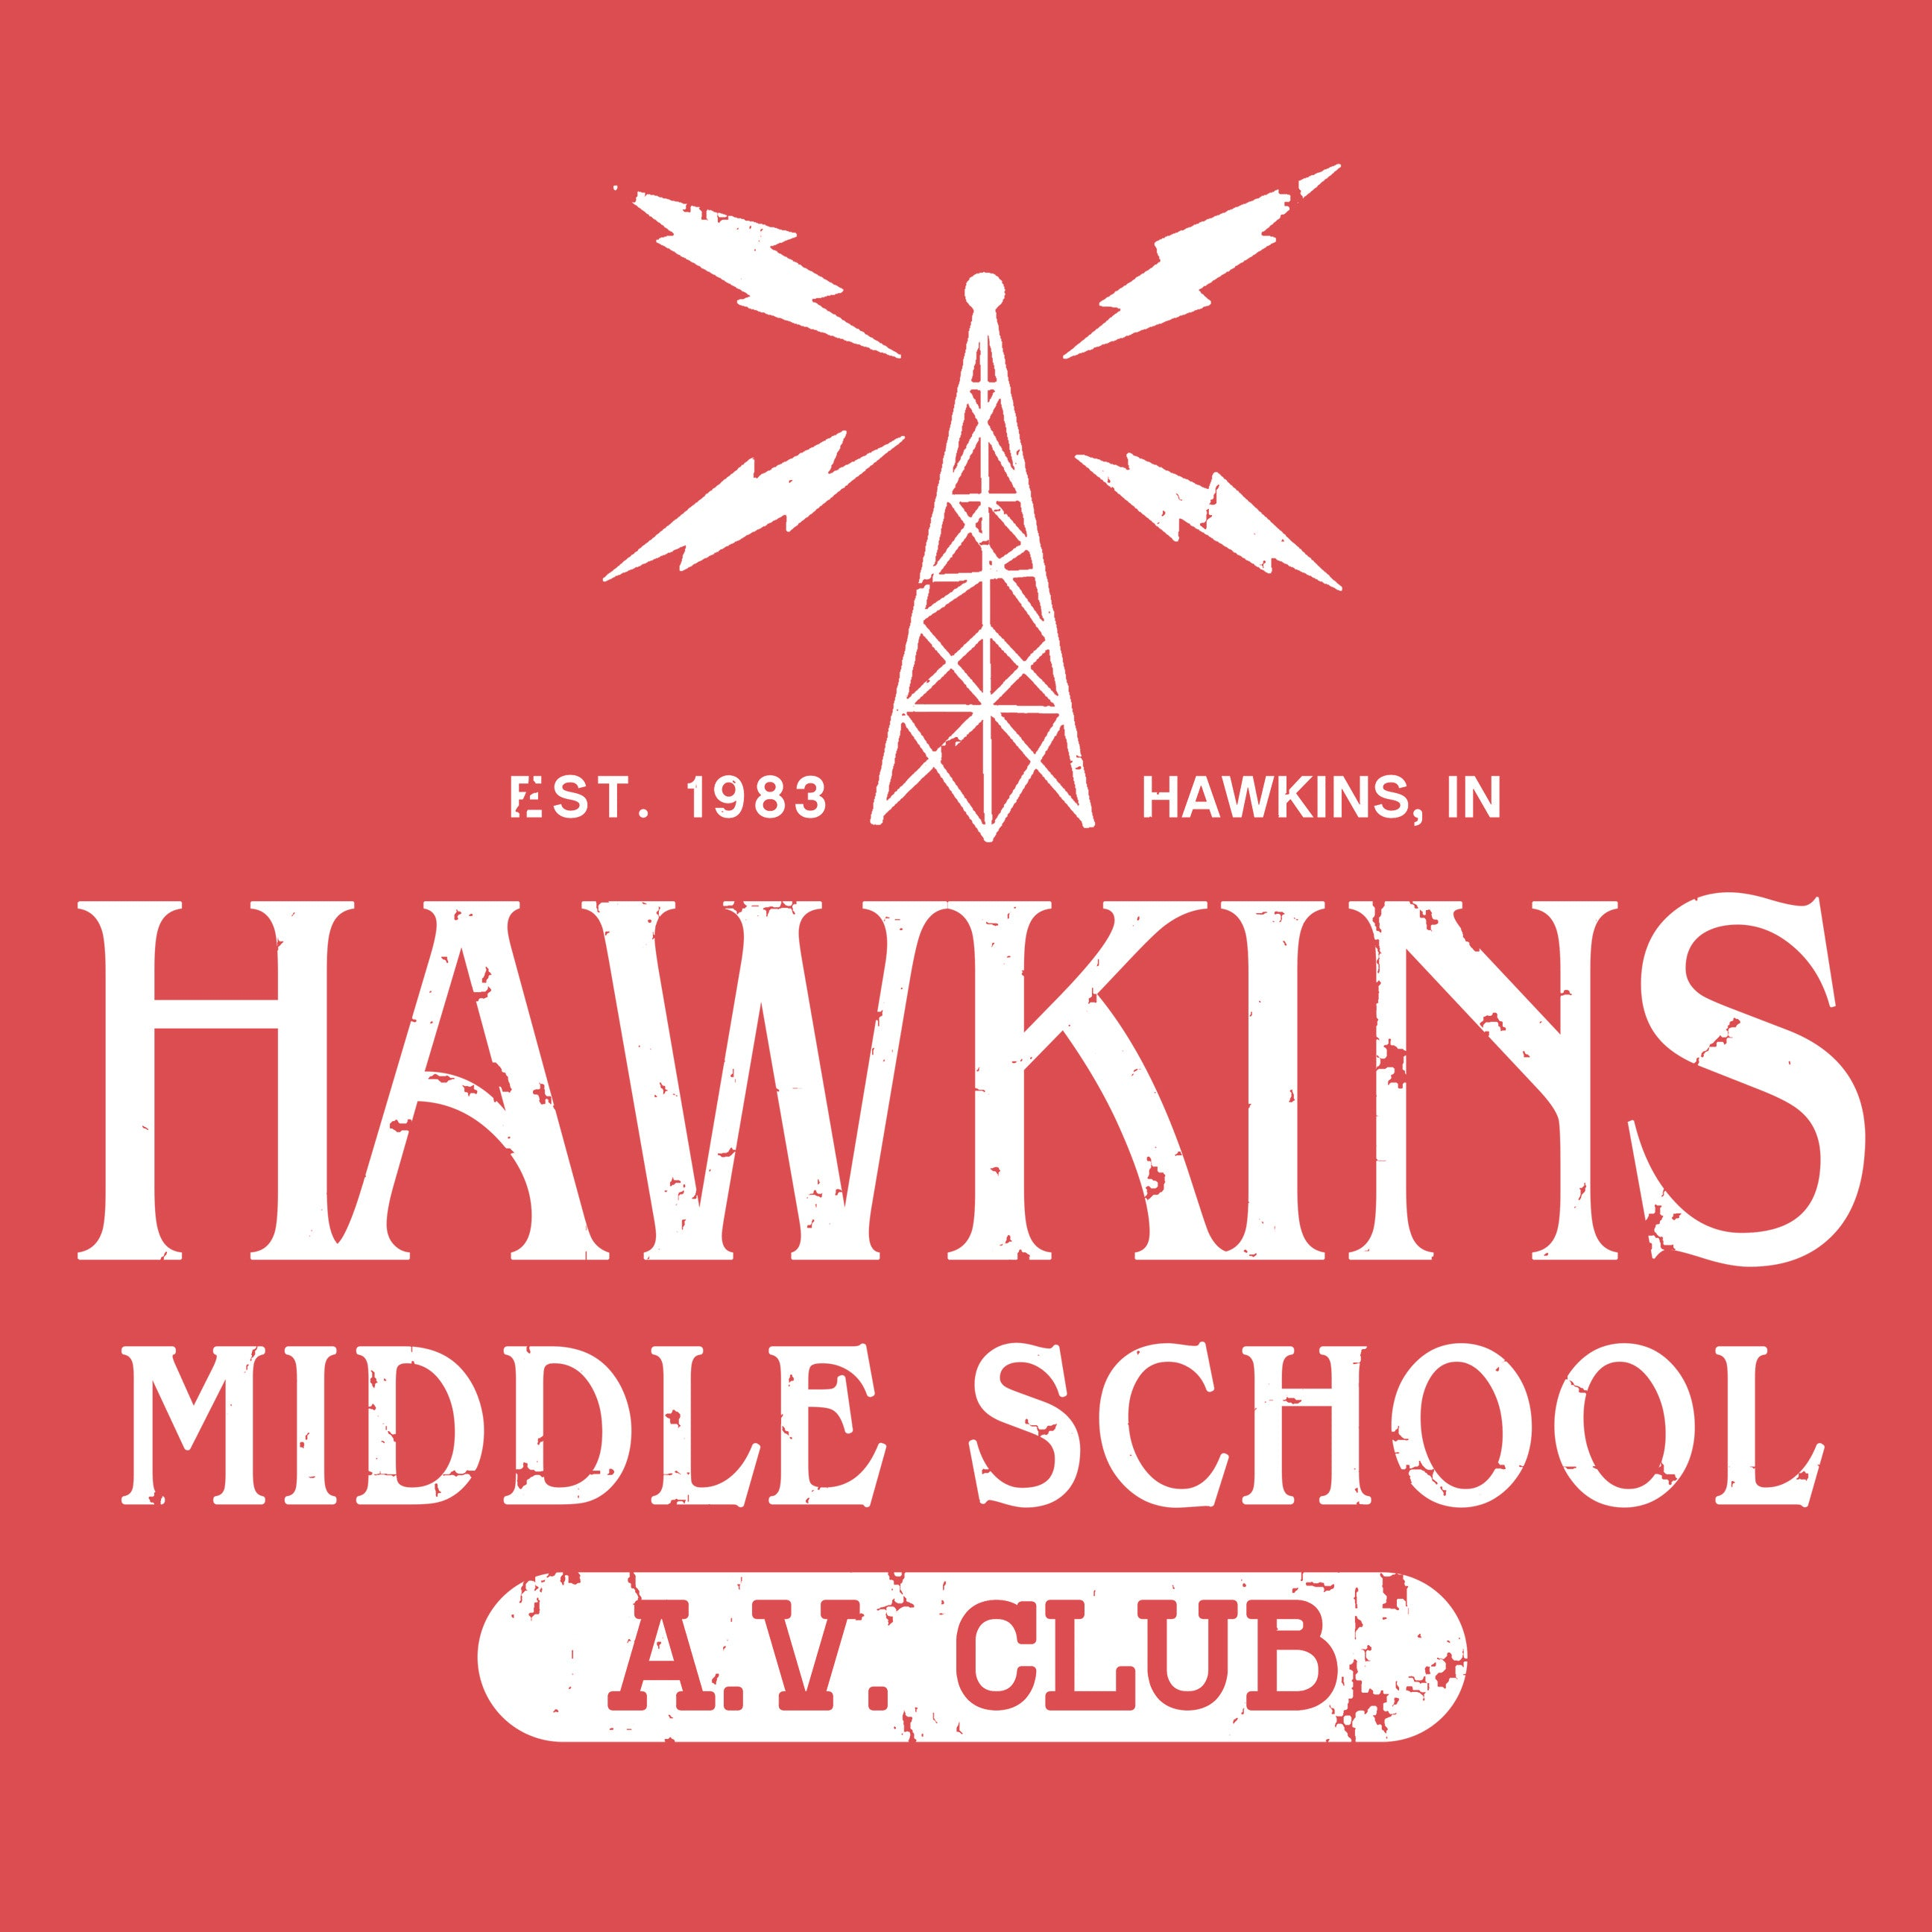 Hawkins Middle School Stranger Things Apparel Fluffy Crate